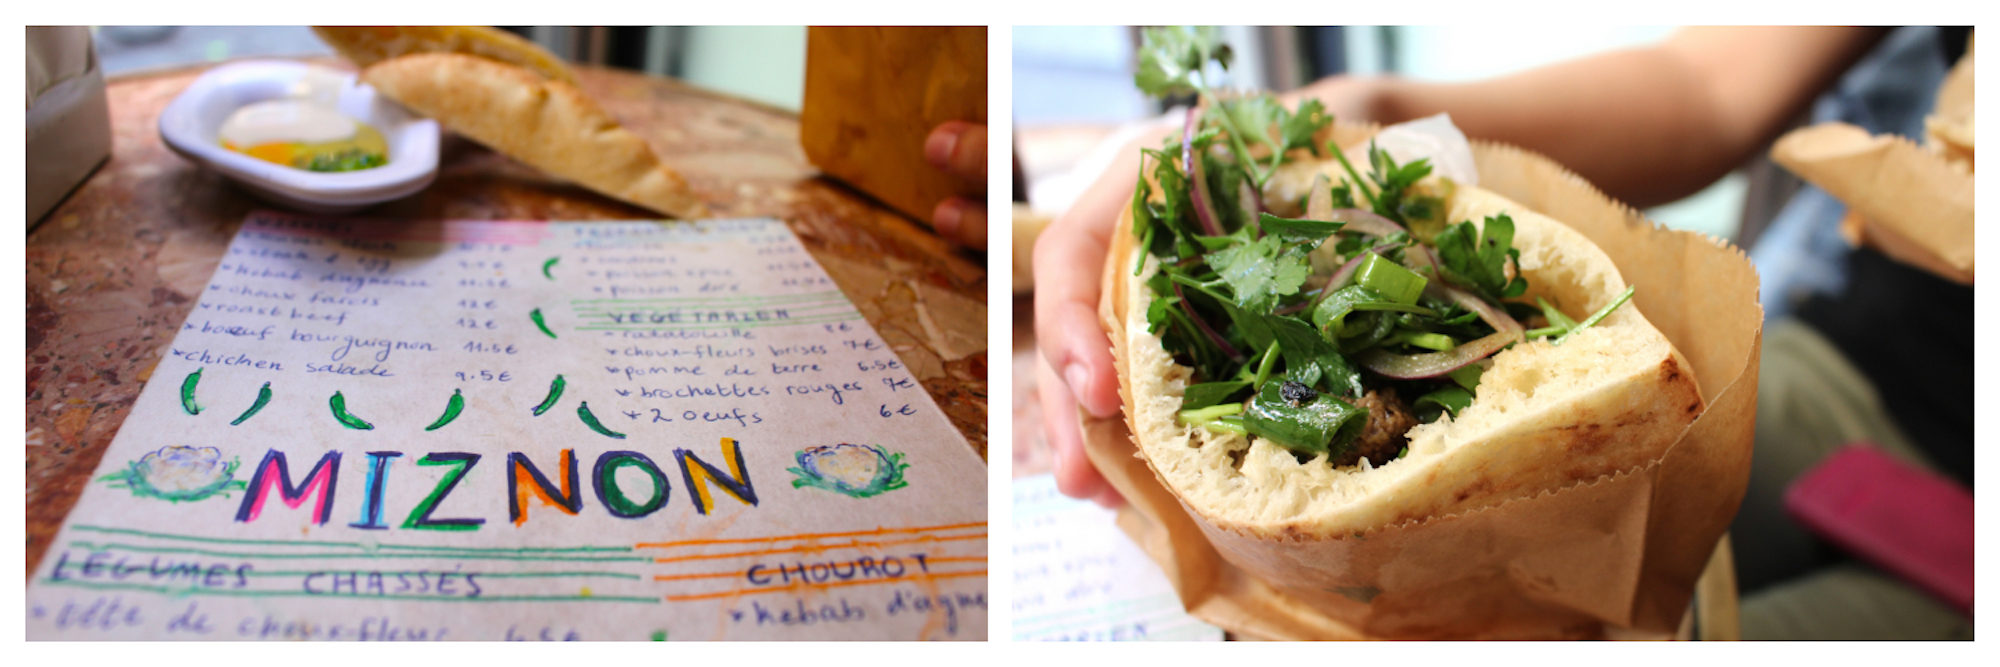 Where to eat falafel in the Marais in Paris? At Miznon with a menu of delicious Israeli dishes (left) including warm pita falafel sandwiches (right).